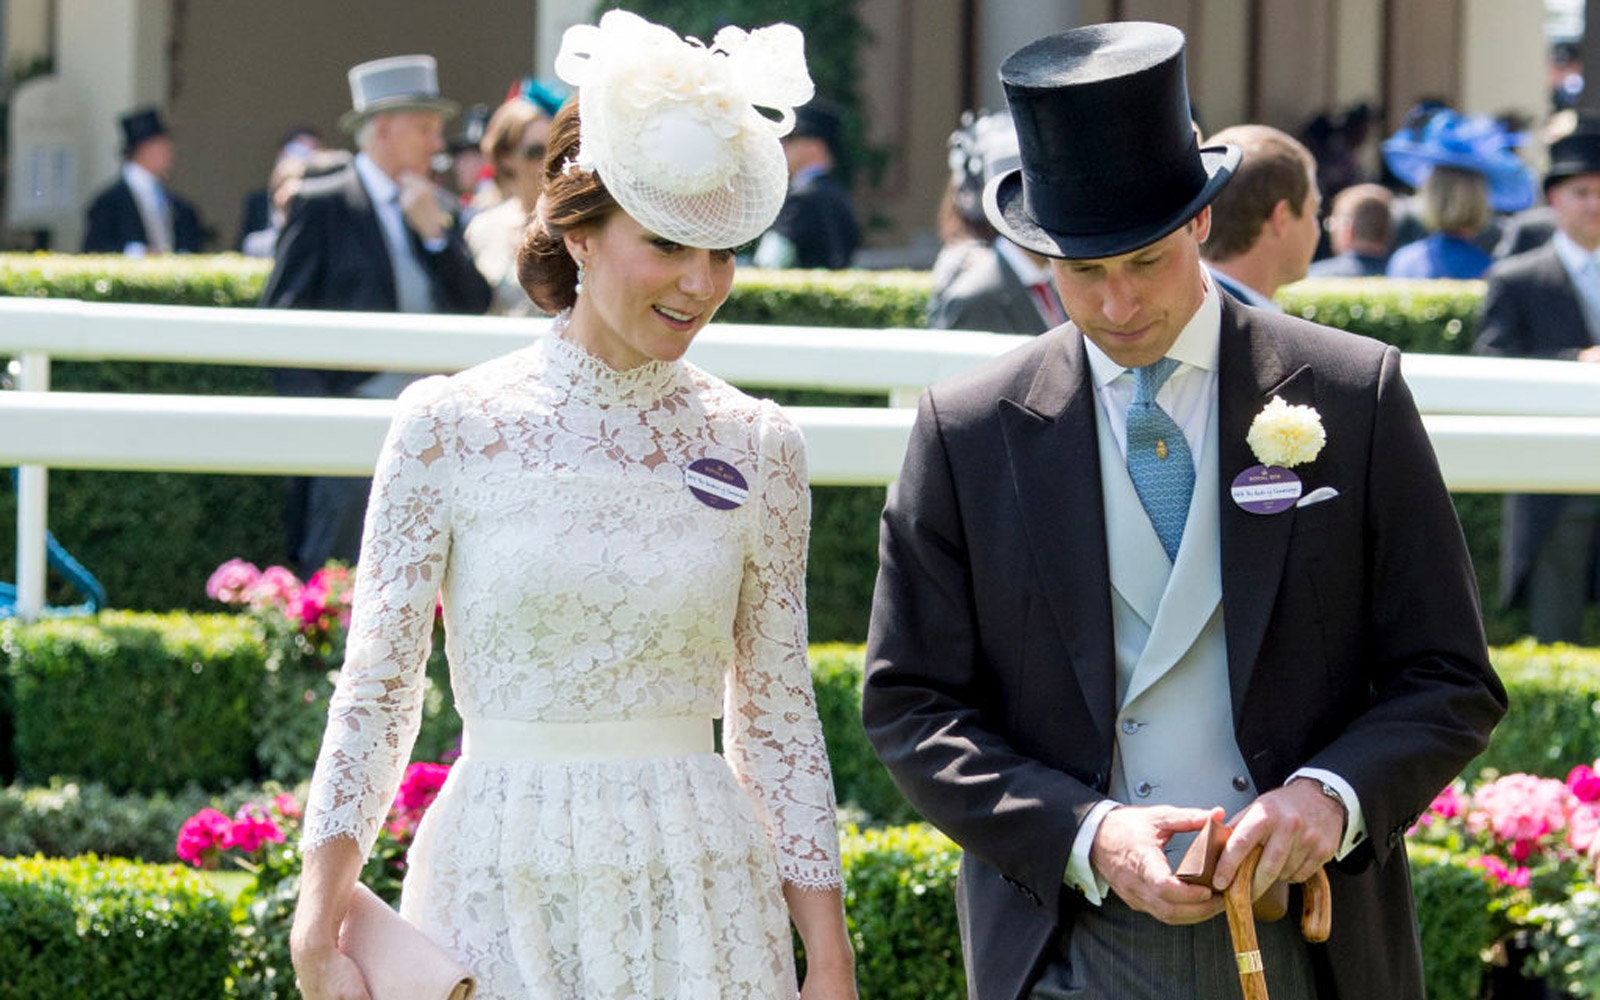 ASCOT, ENGLAND - JUNE 20:  Prince William, Duke of Cambridge and Catherine, Duchess of Cambridge attend Royal Ascot 2017 at Ascot Racecourse on June 20, 2017 in Ascot, England.  (Photo by Mark Cuthbert/UK Press via Getty Images)